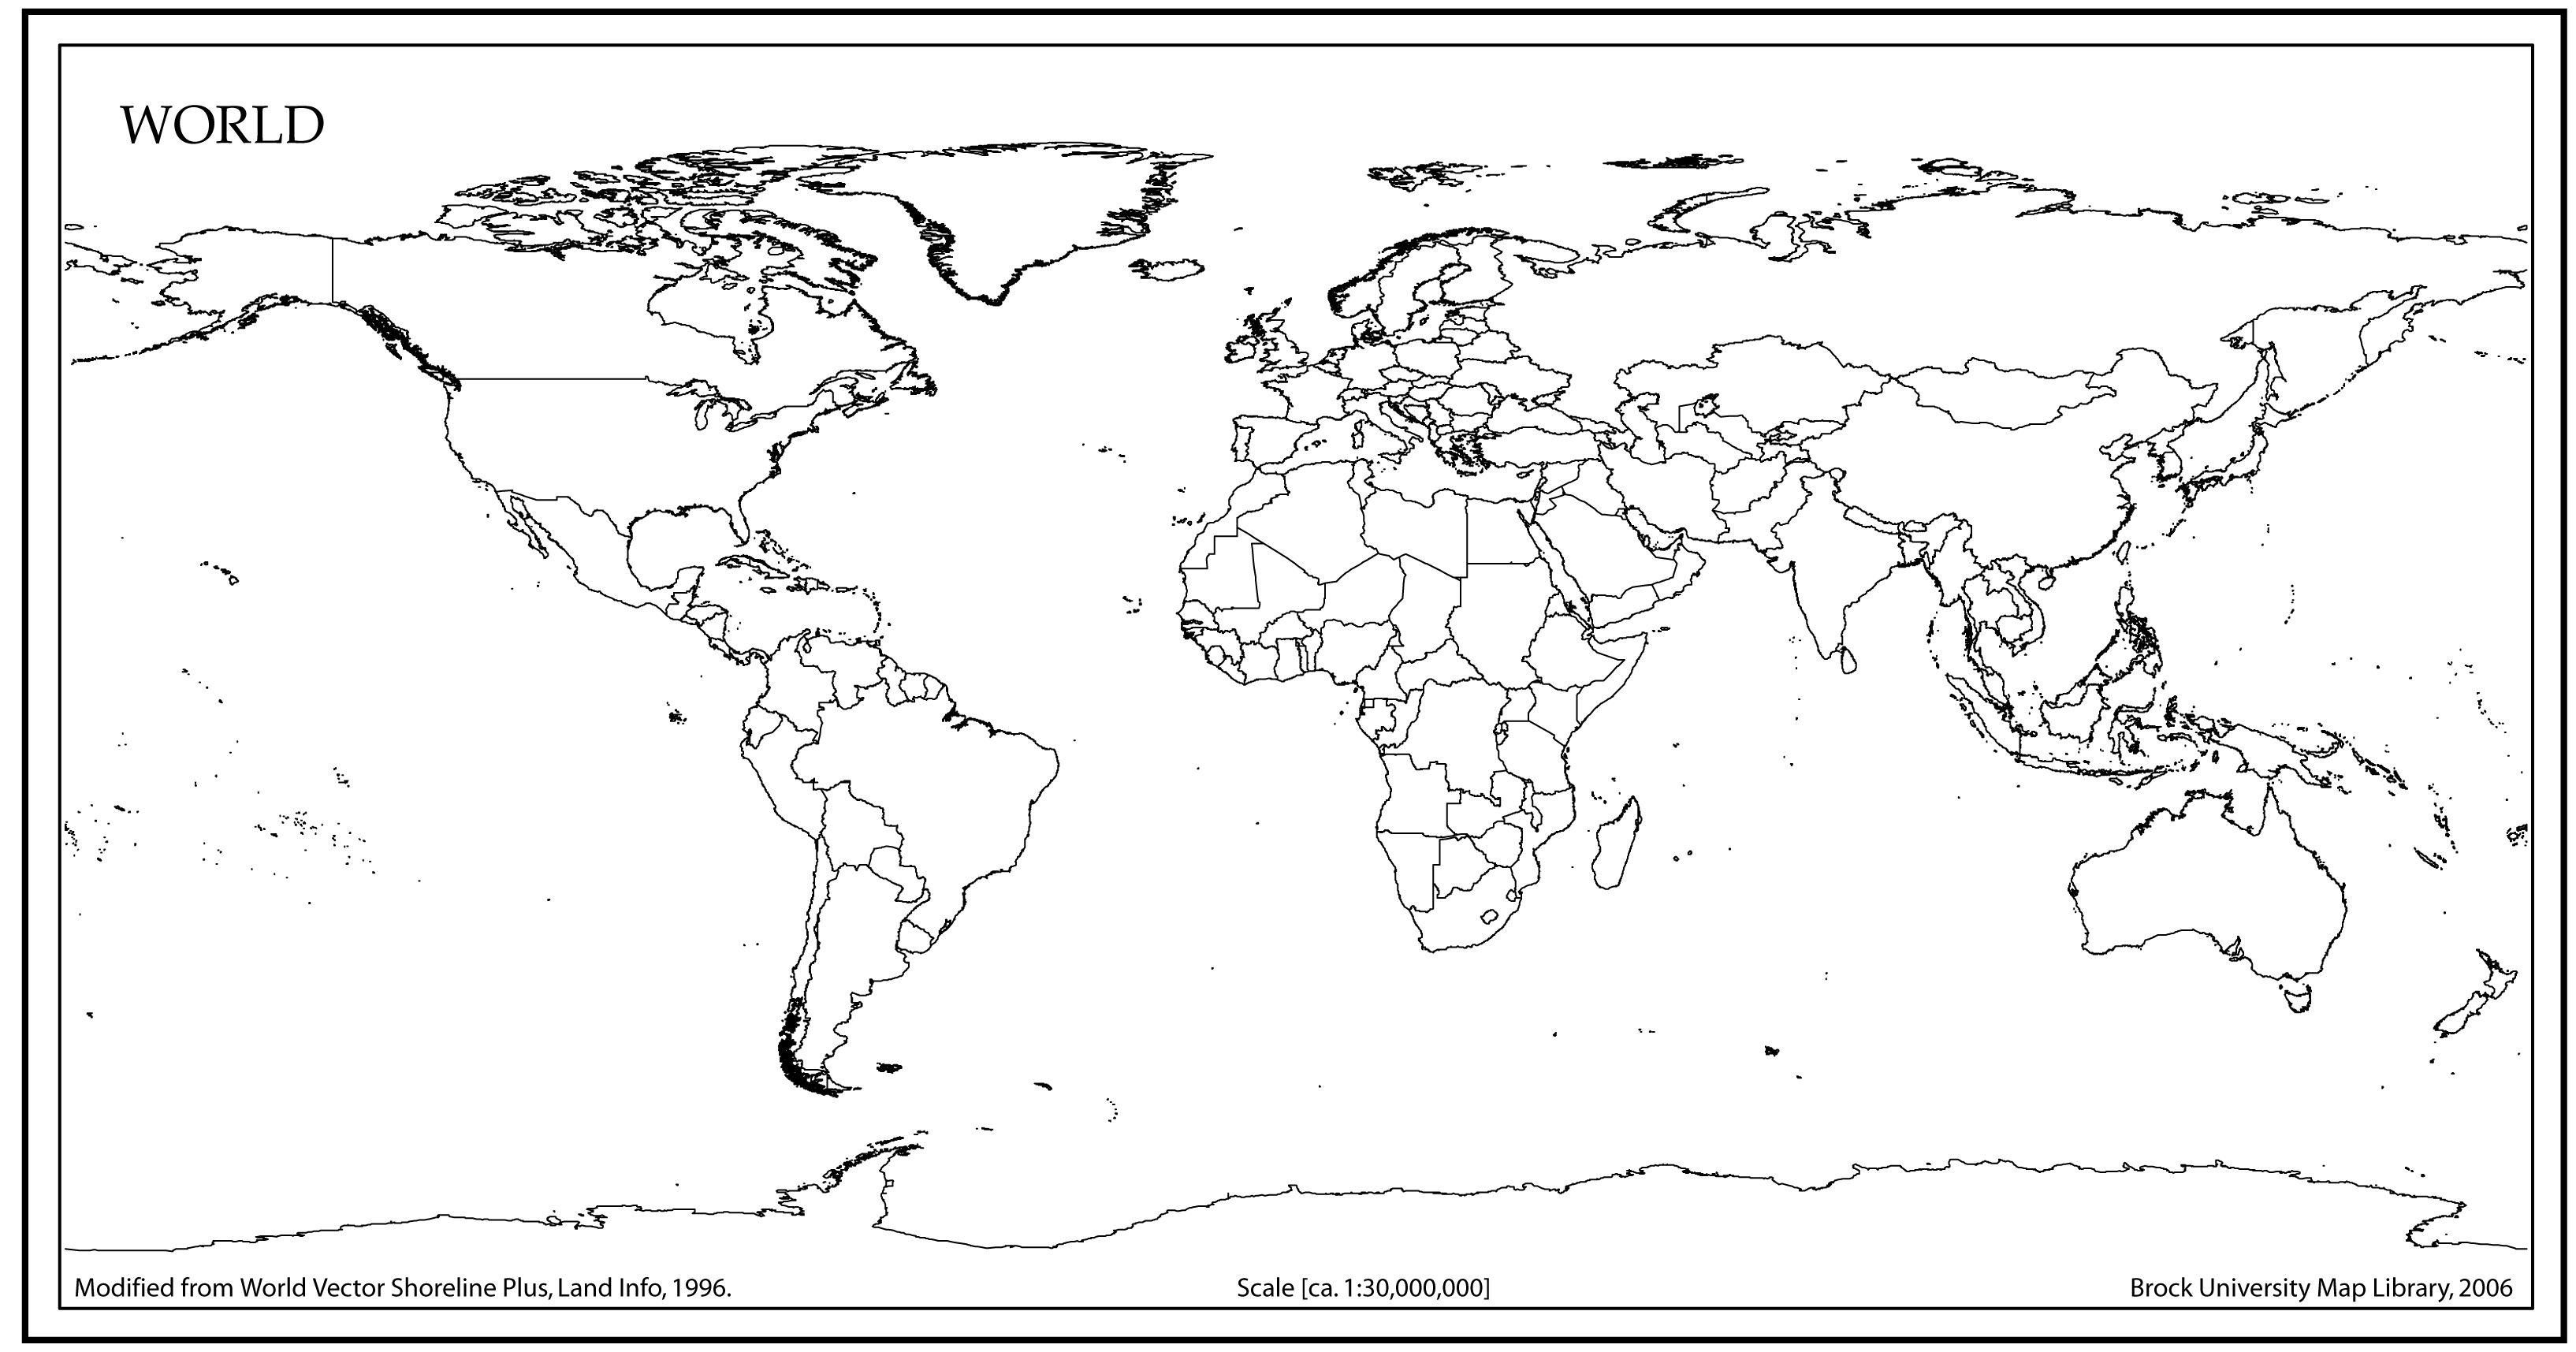 World Map Outline with Countries | World map | Pinterest | Map ...